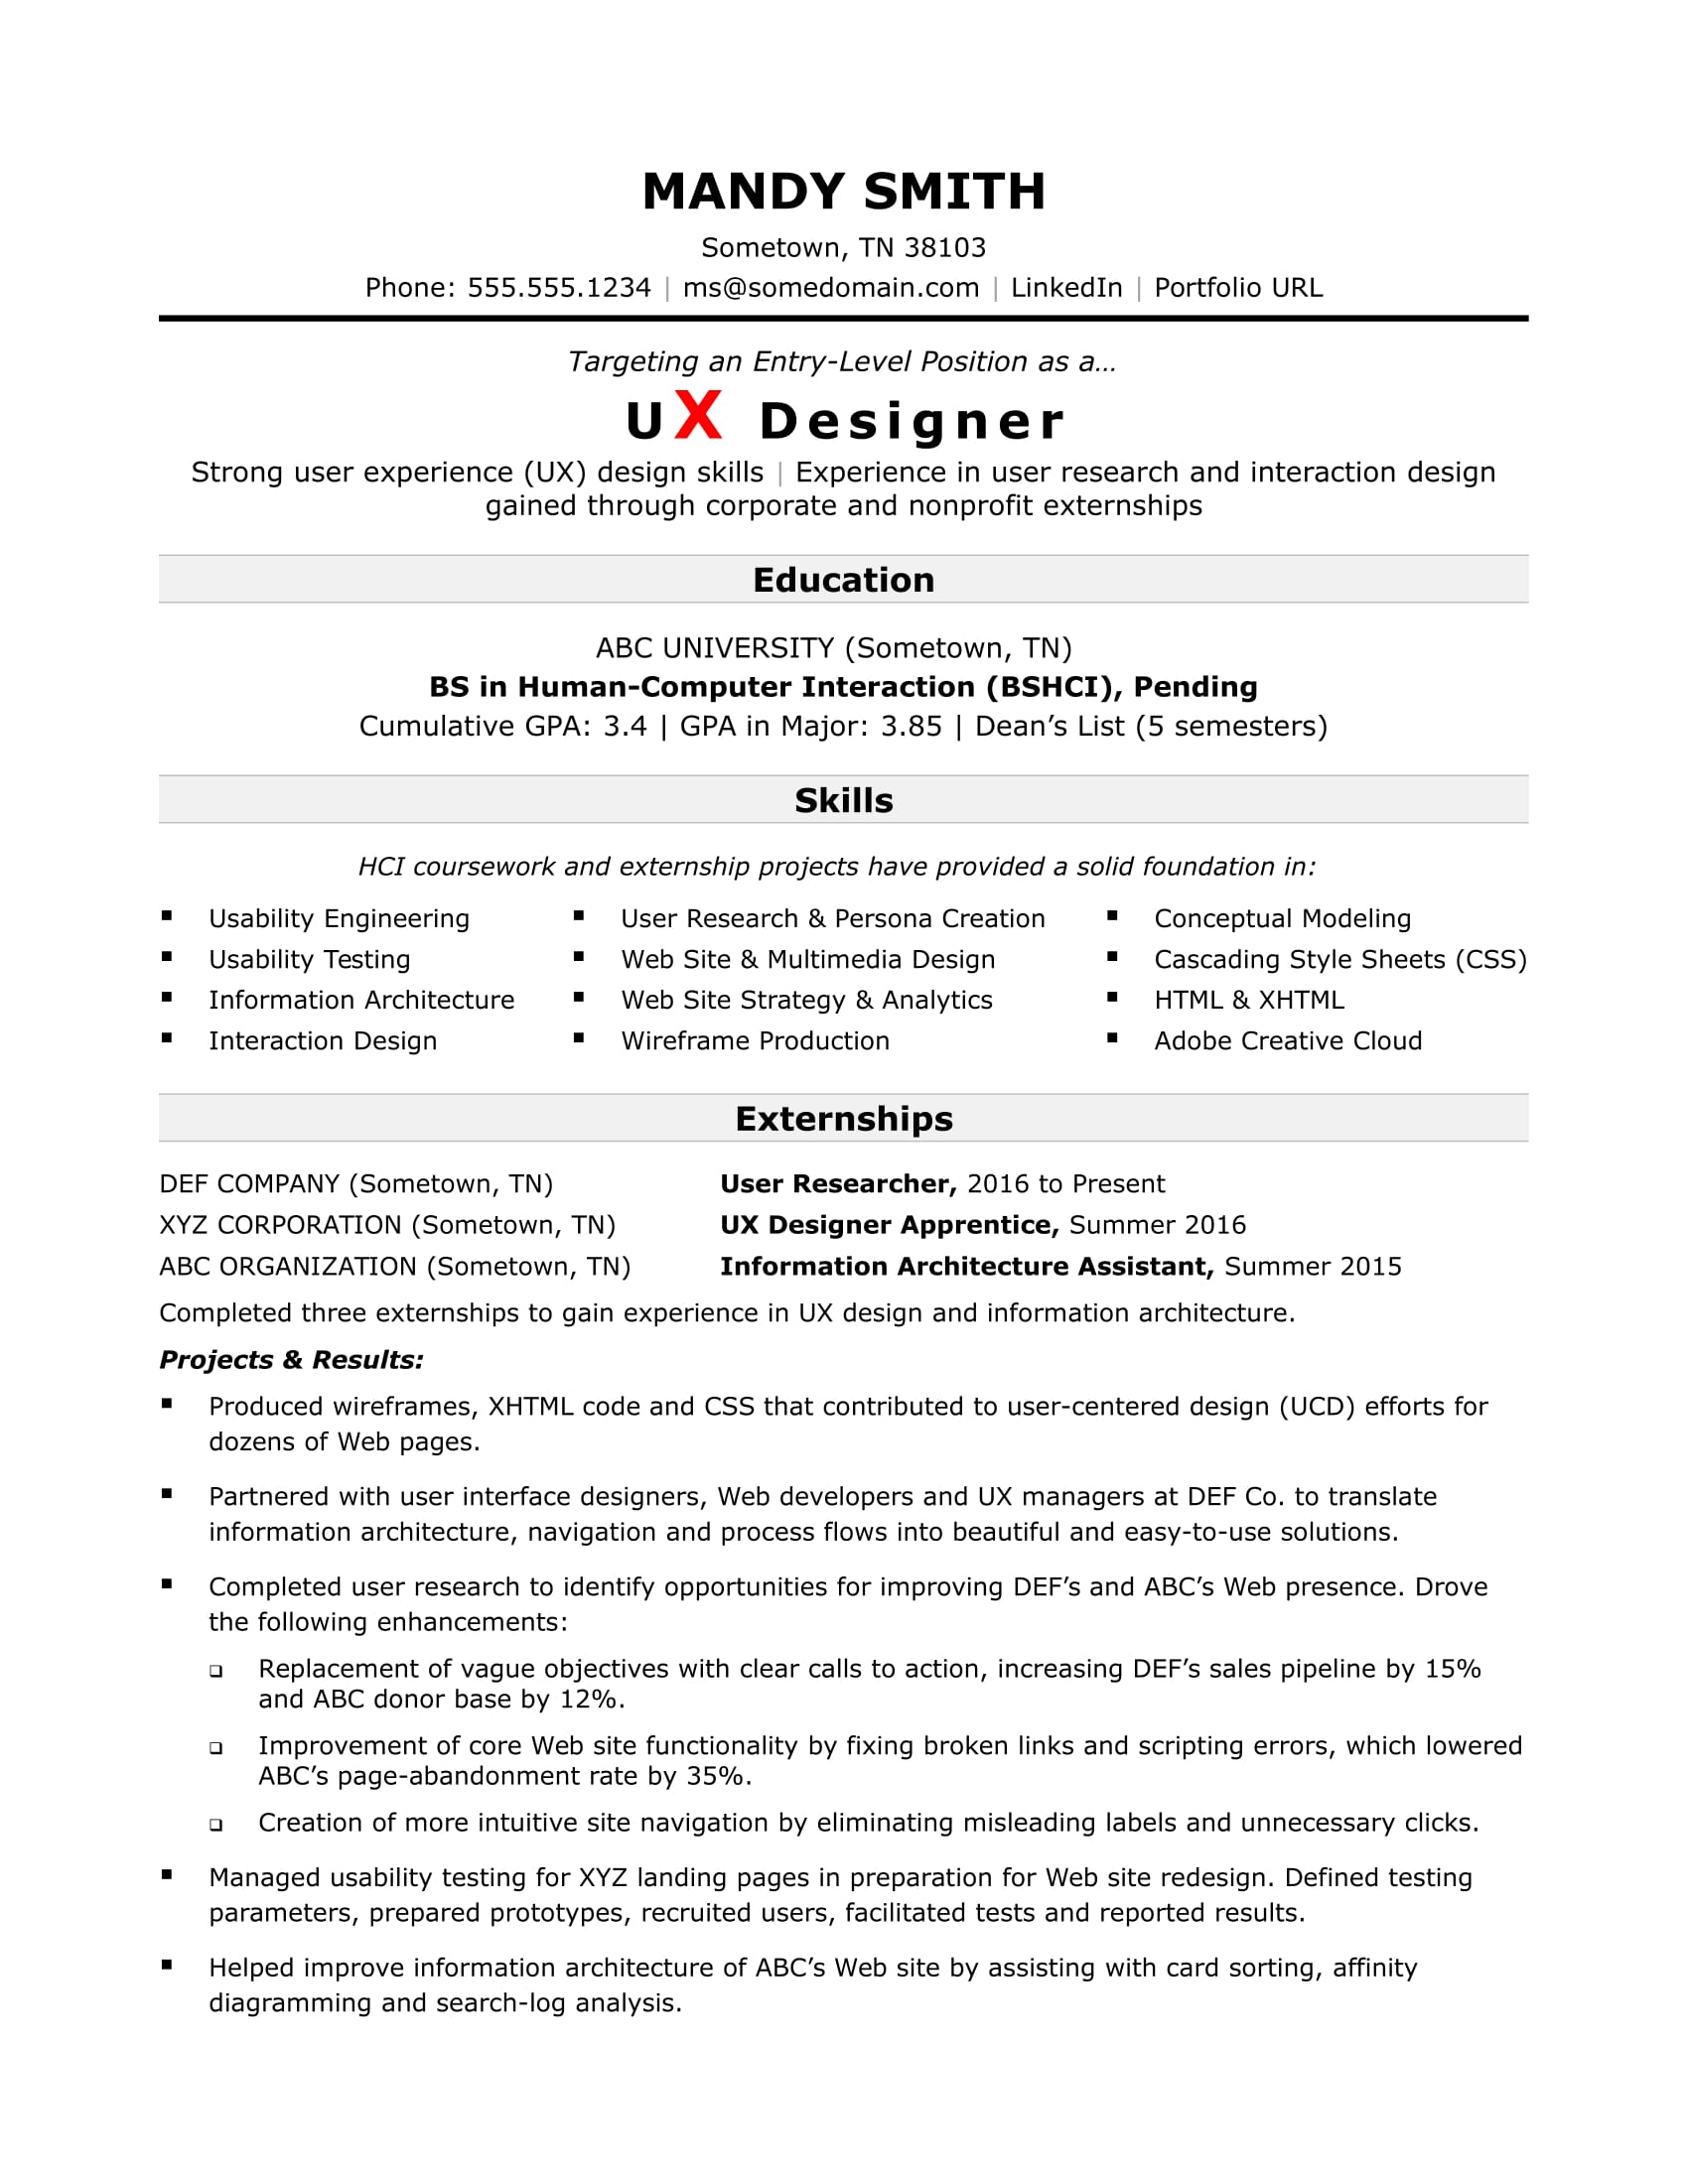 Teaching Resume Samples Entry Level Sample Resume For An Entry Level Ux Designer Monster